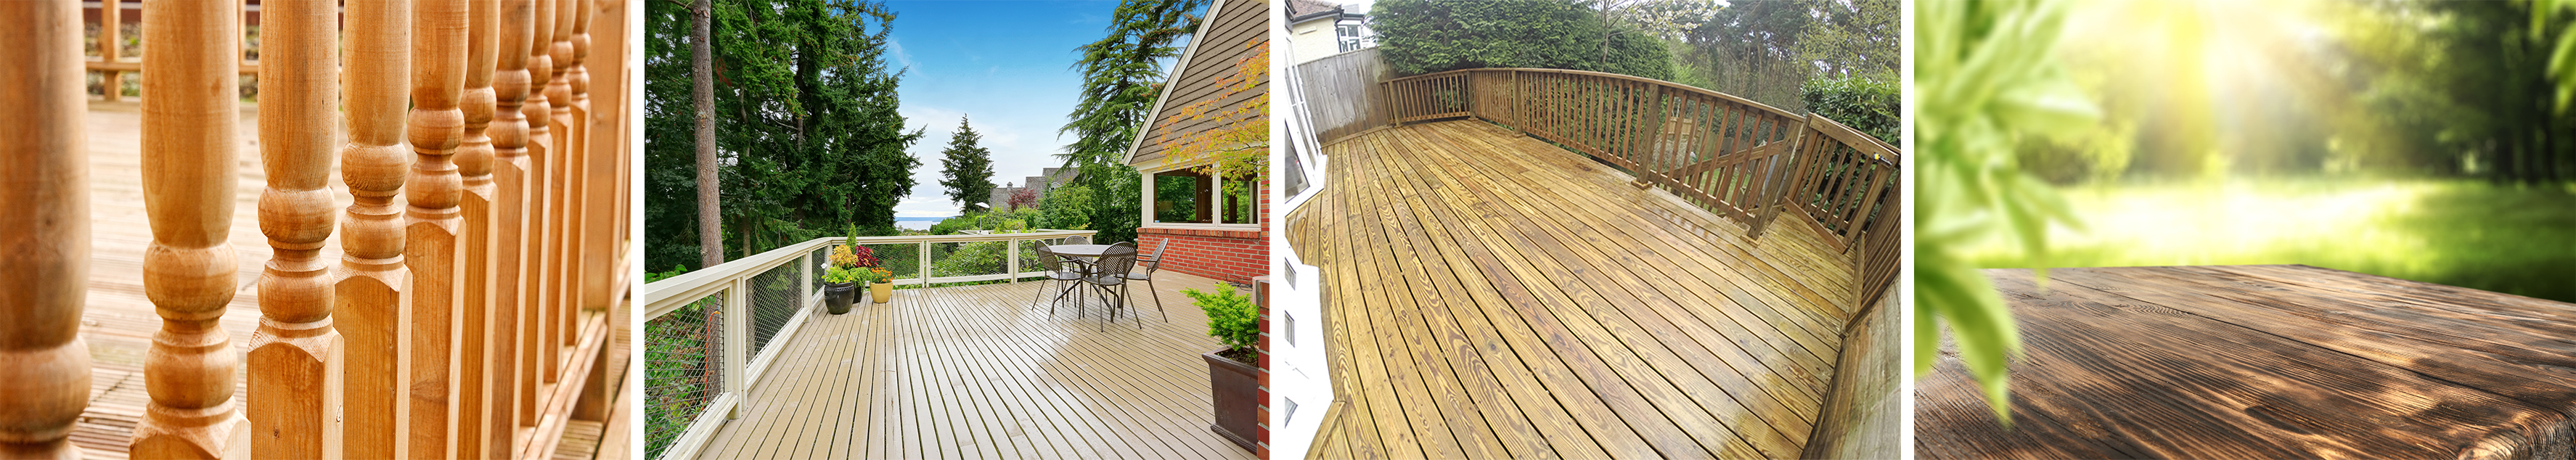 Decking Cleaning Services in Broadstone, Dorset